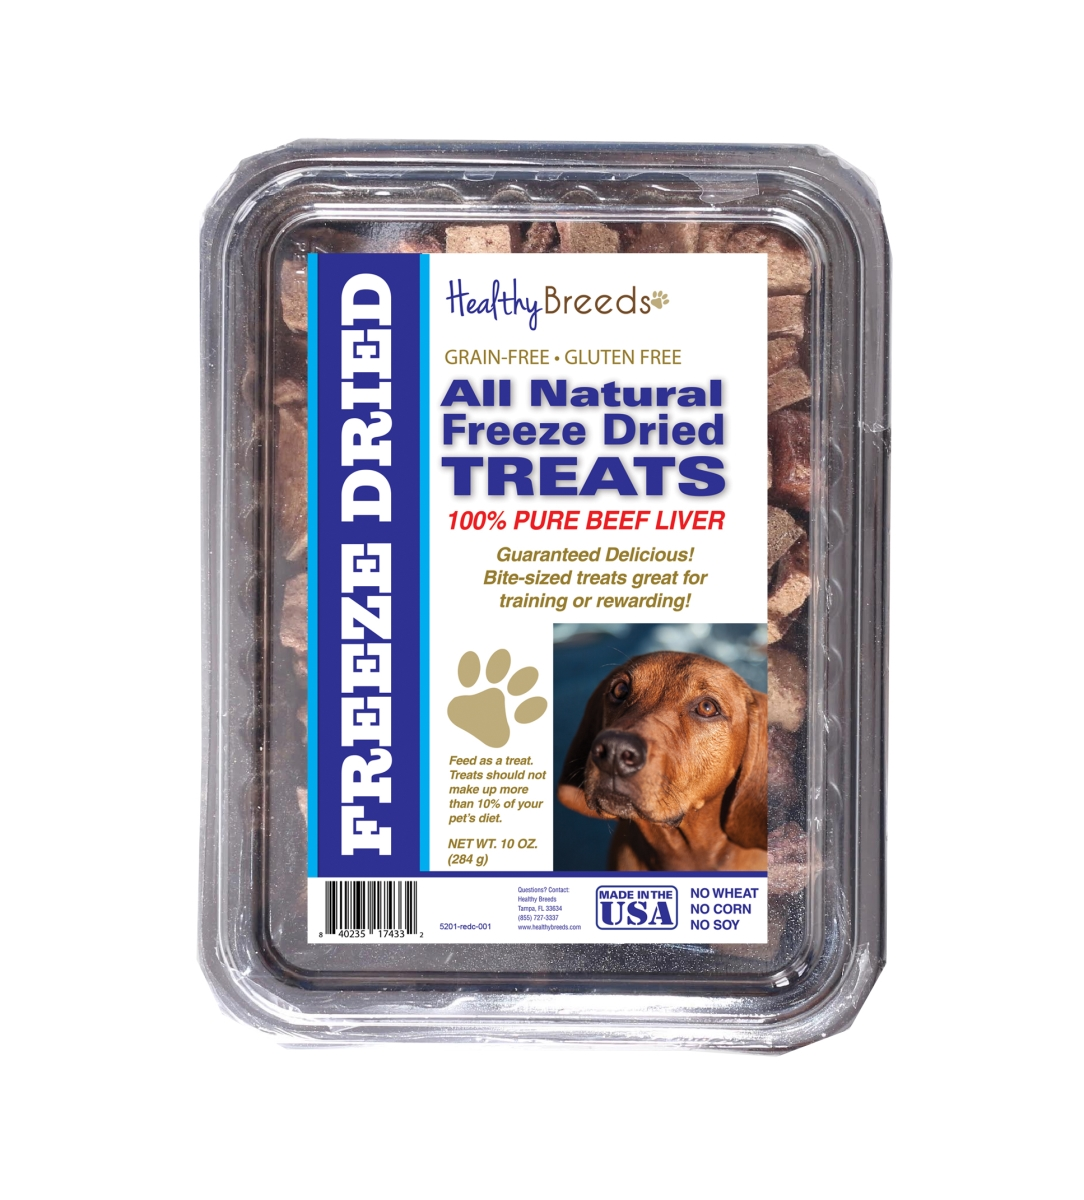 Healthy Breeds 840235174332 10 oz Redbone Coonhound All Natural Freeze Dried Treats Beef Liver